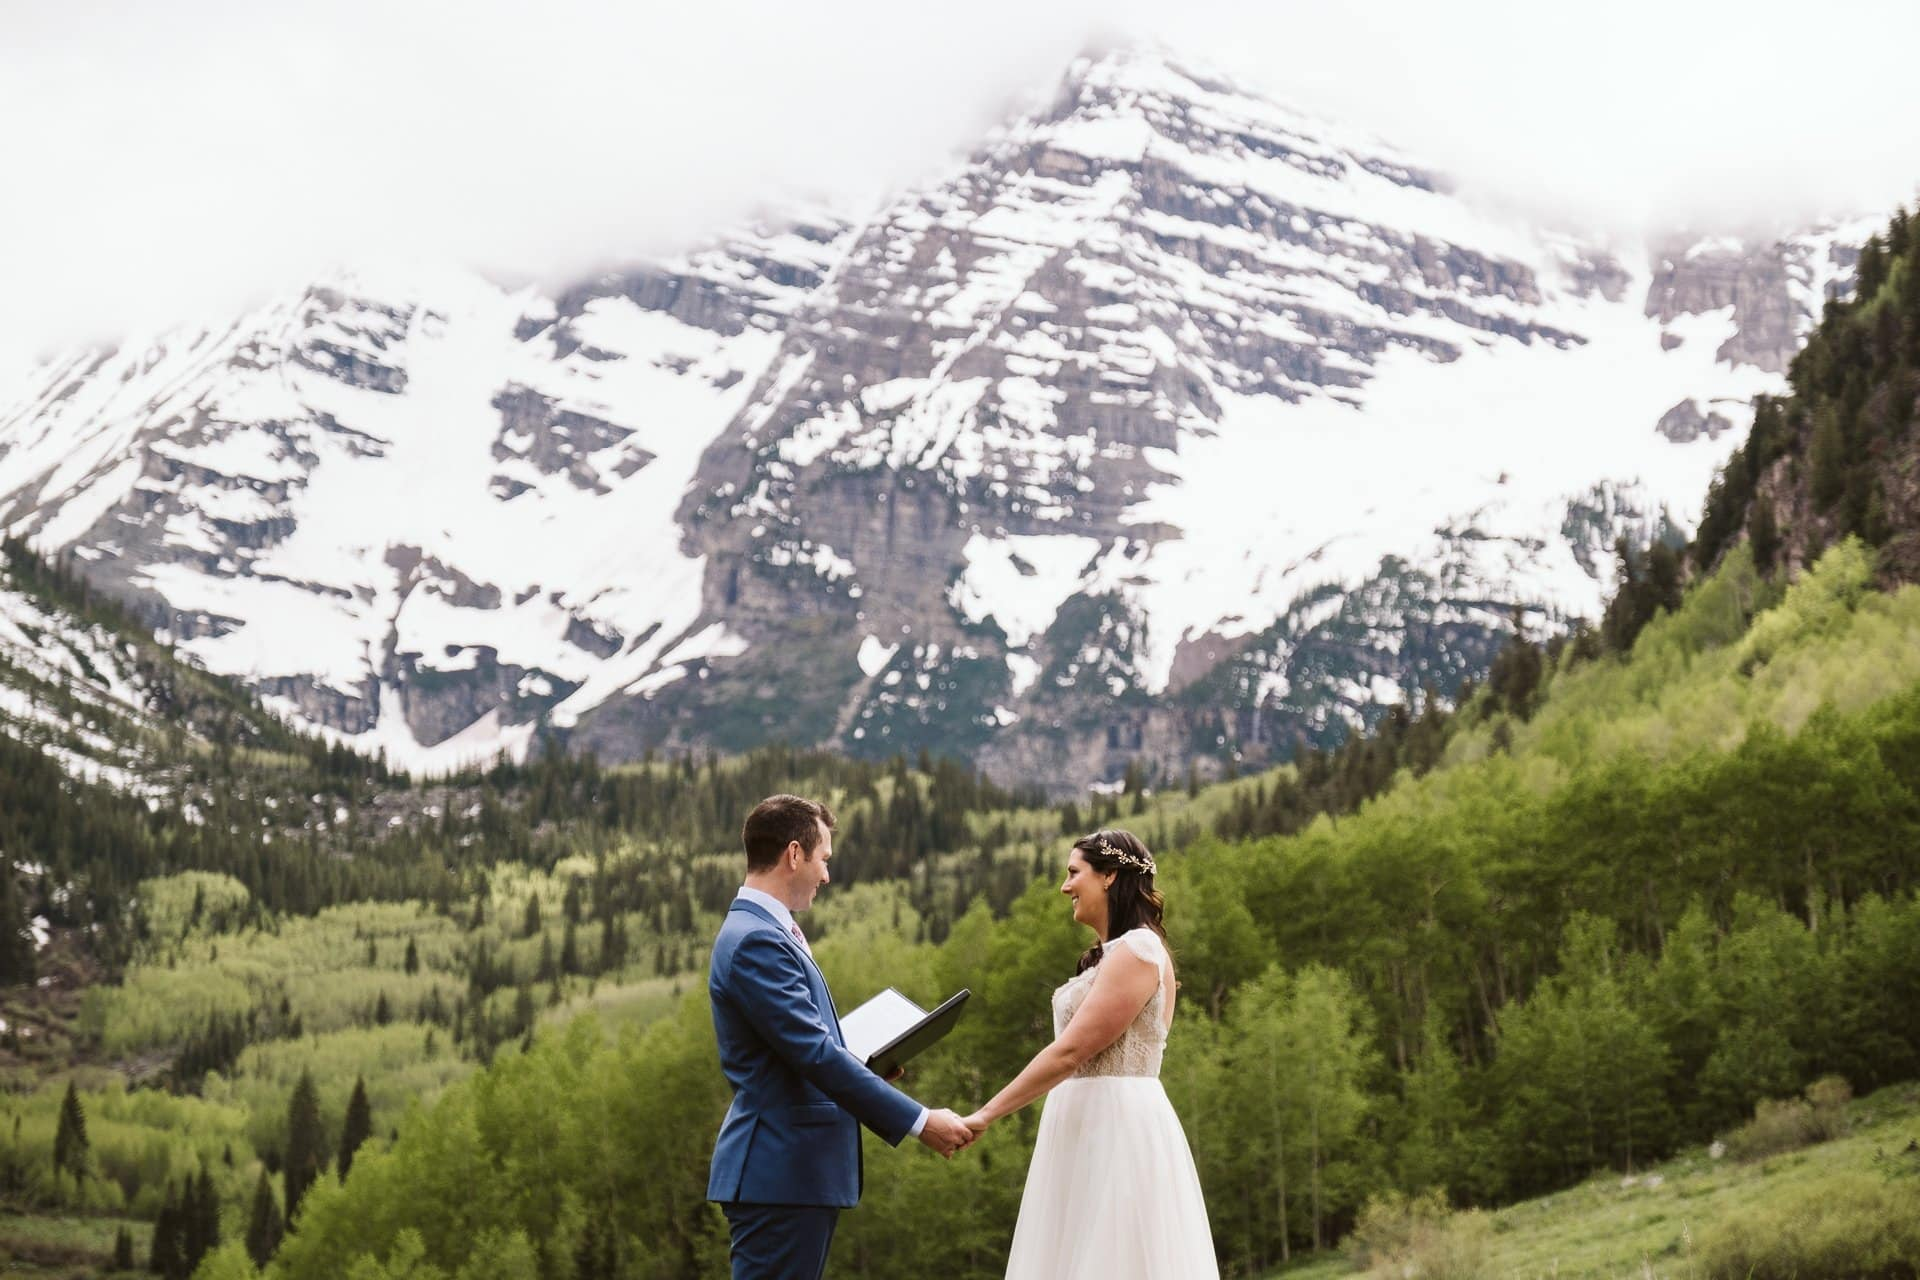 Chrissy + Mark's Maroon Bells Elopement